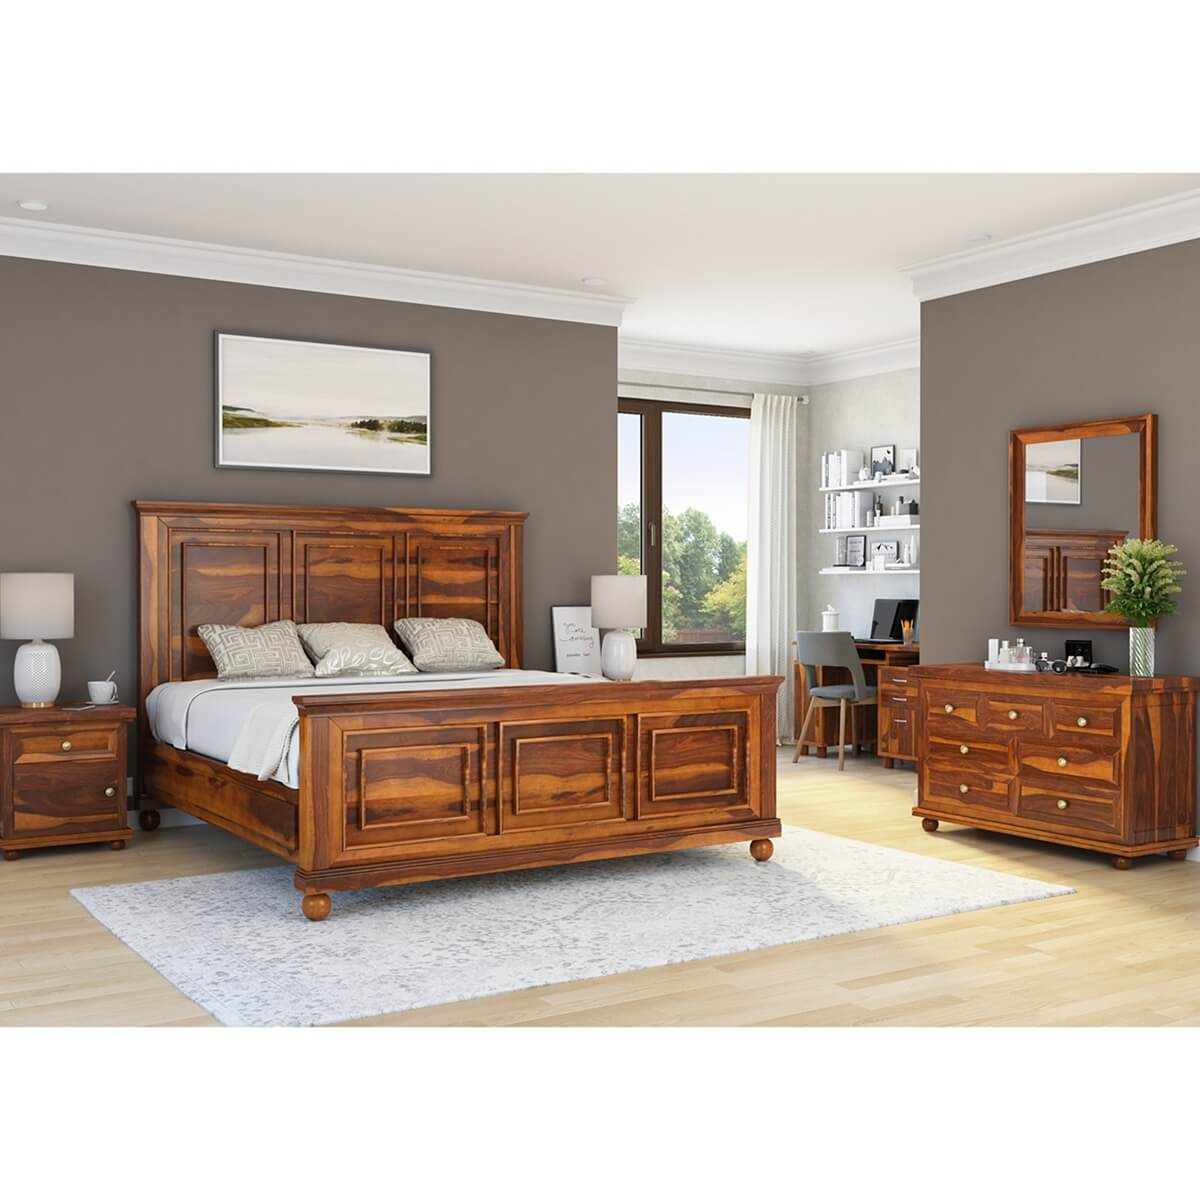 pecos solid wood full size platform bed 7pc bedroom furniture set. Black Bedroom Furniture Sets. Home Design Ideas